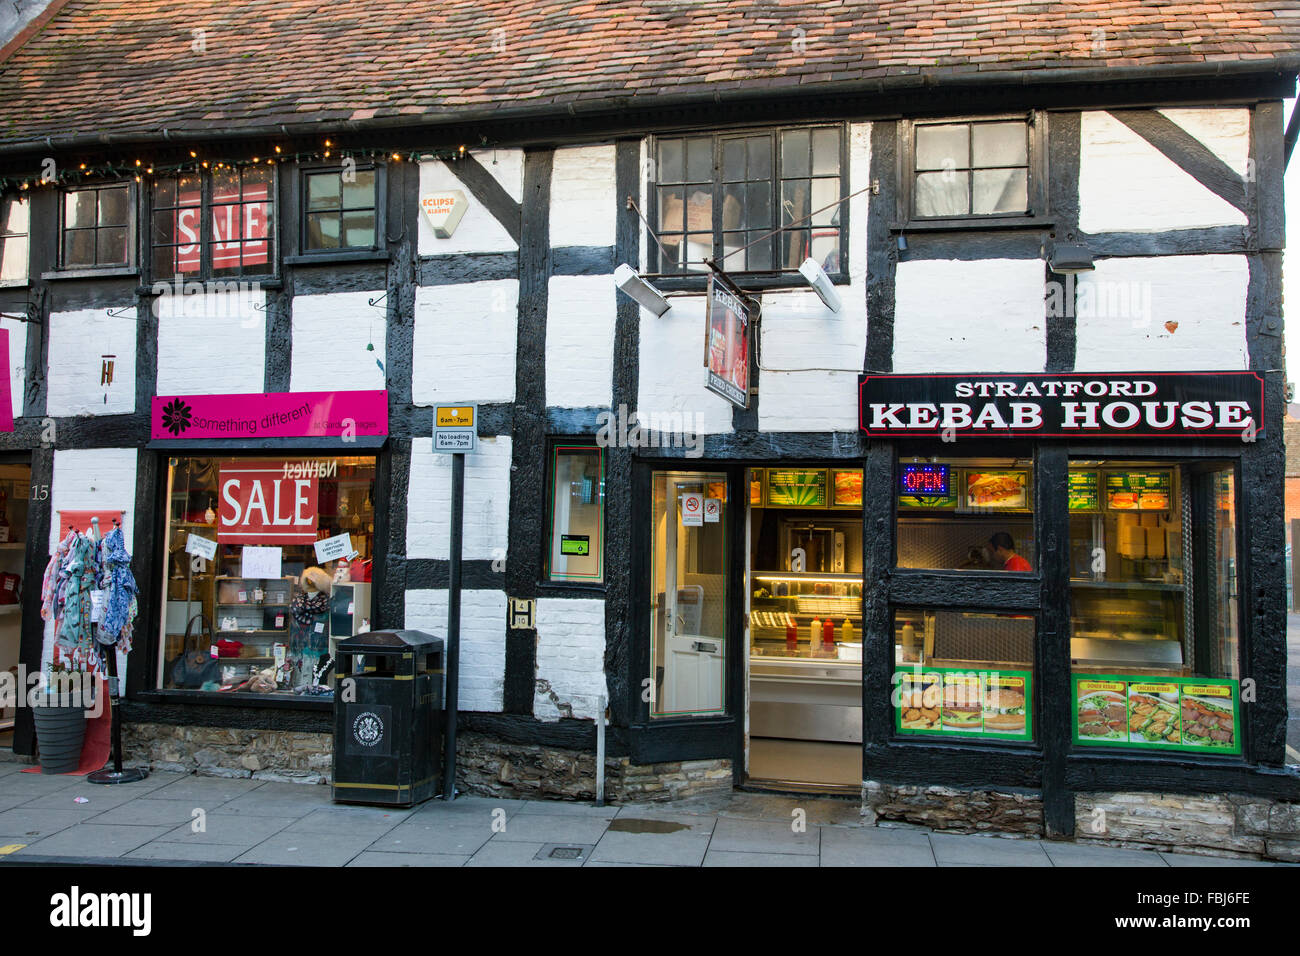 A historic Tudor building being used as a shop and Kebab House, Stratford upon Avon, Warwickshire, England, UK - Stock Image